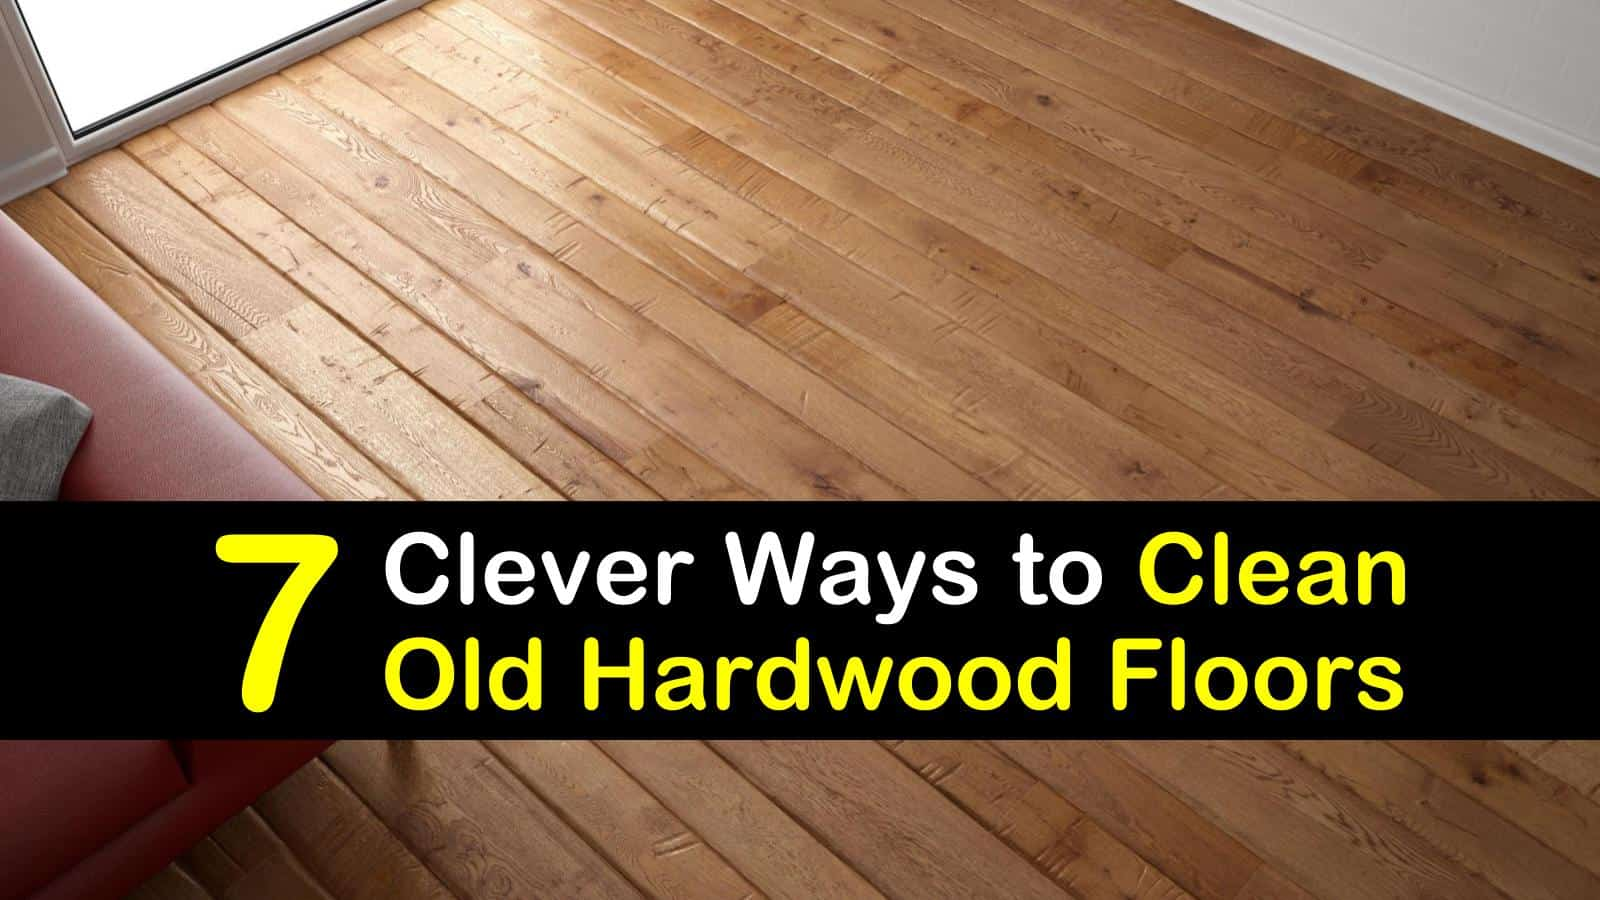 how to clean old hardwood floors titleimg1